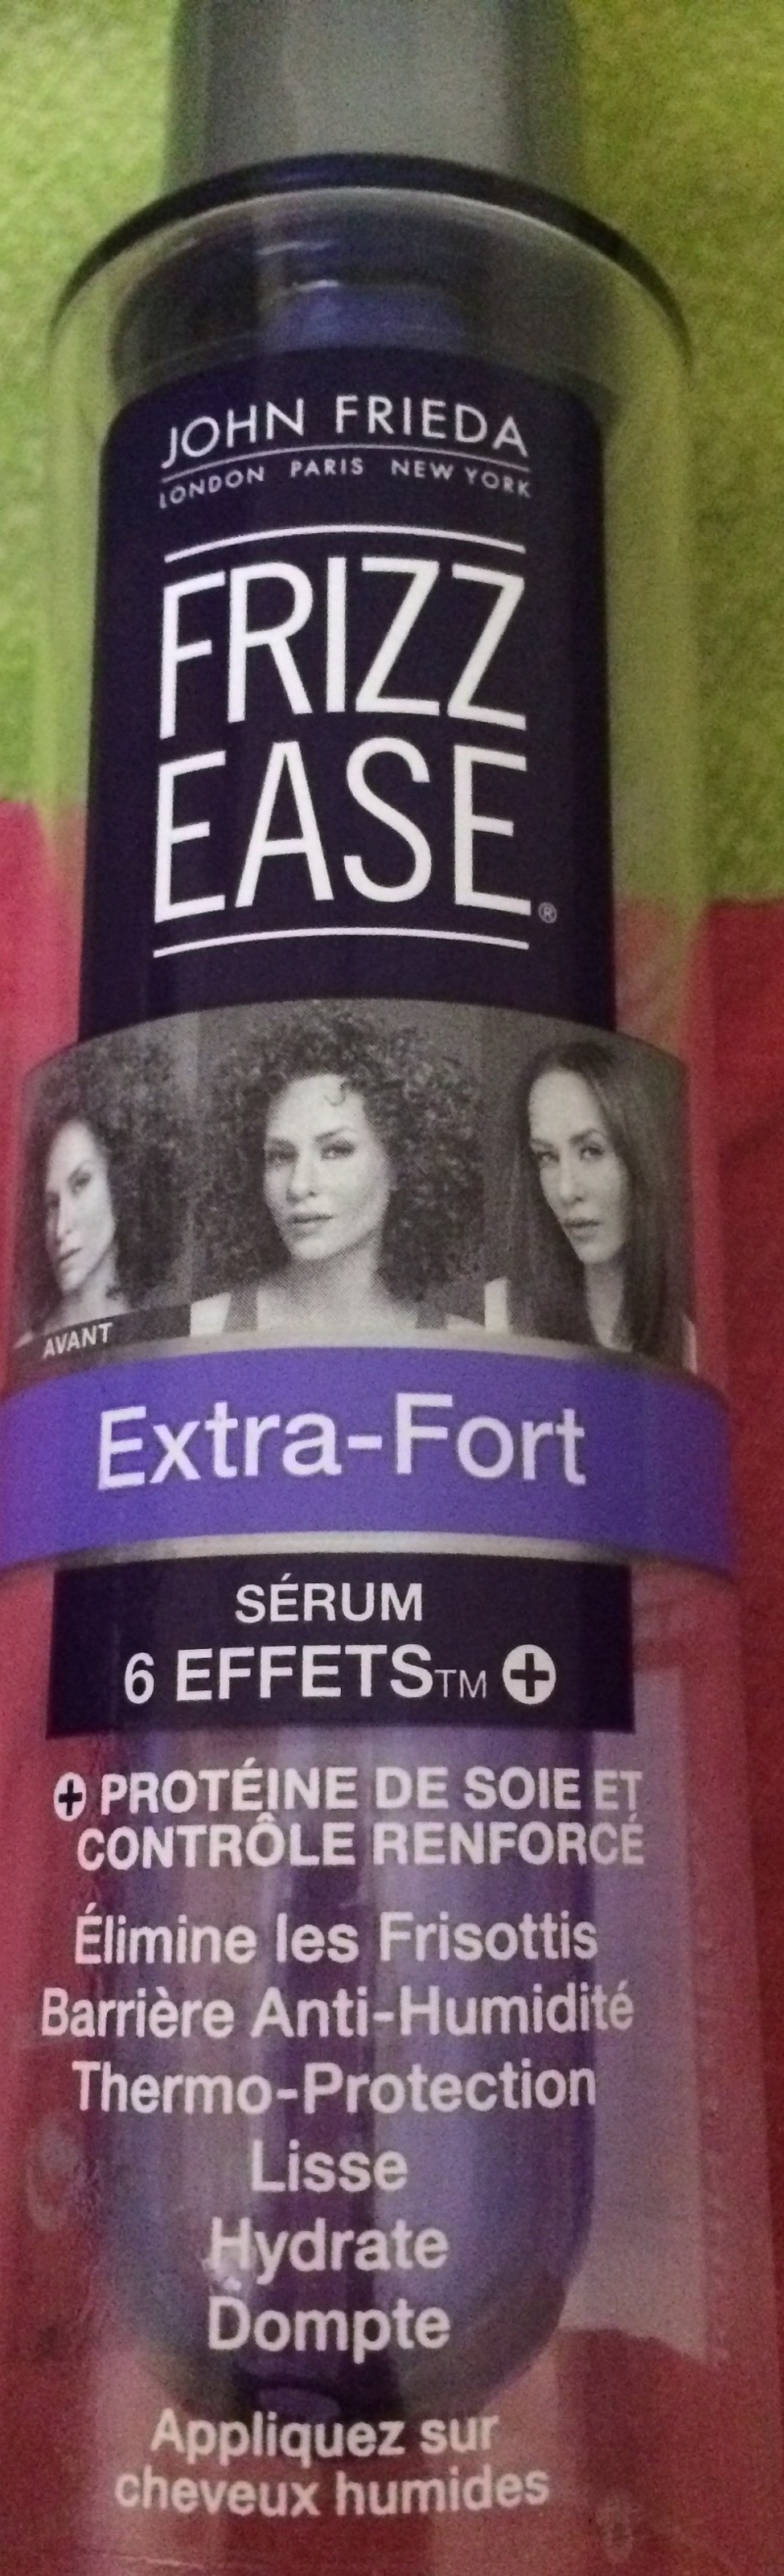 Swatch Sérum 6 effets frizz ease, John Frieda